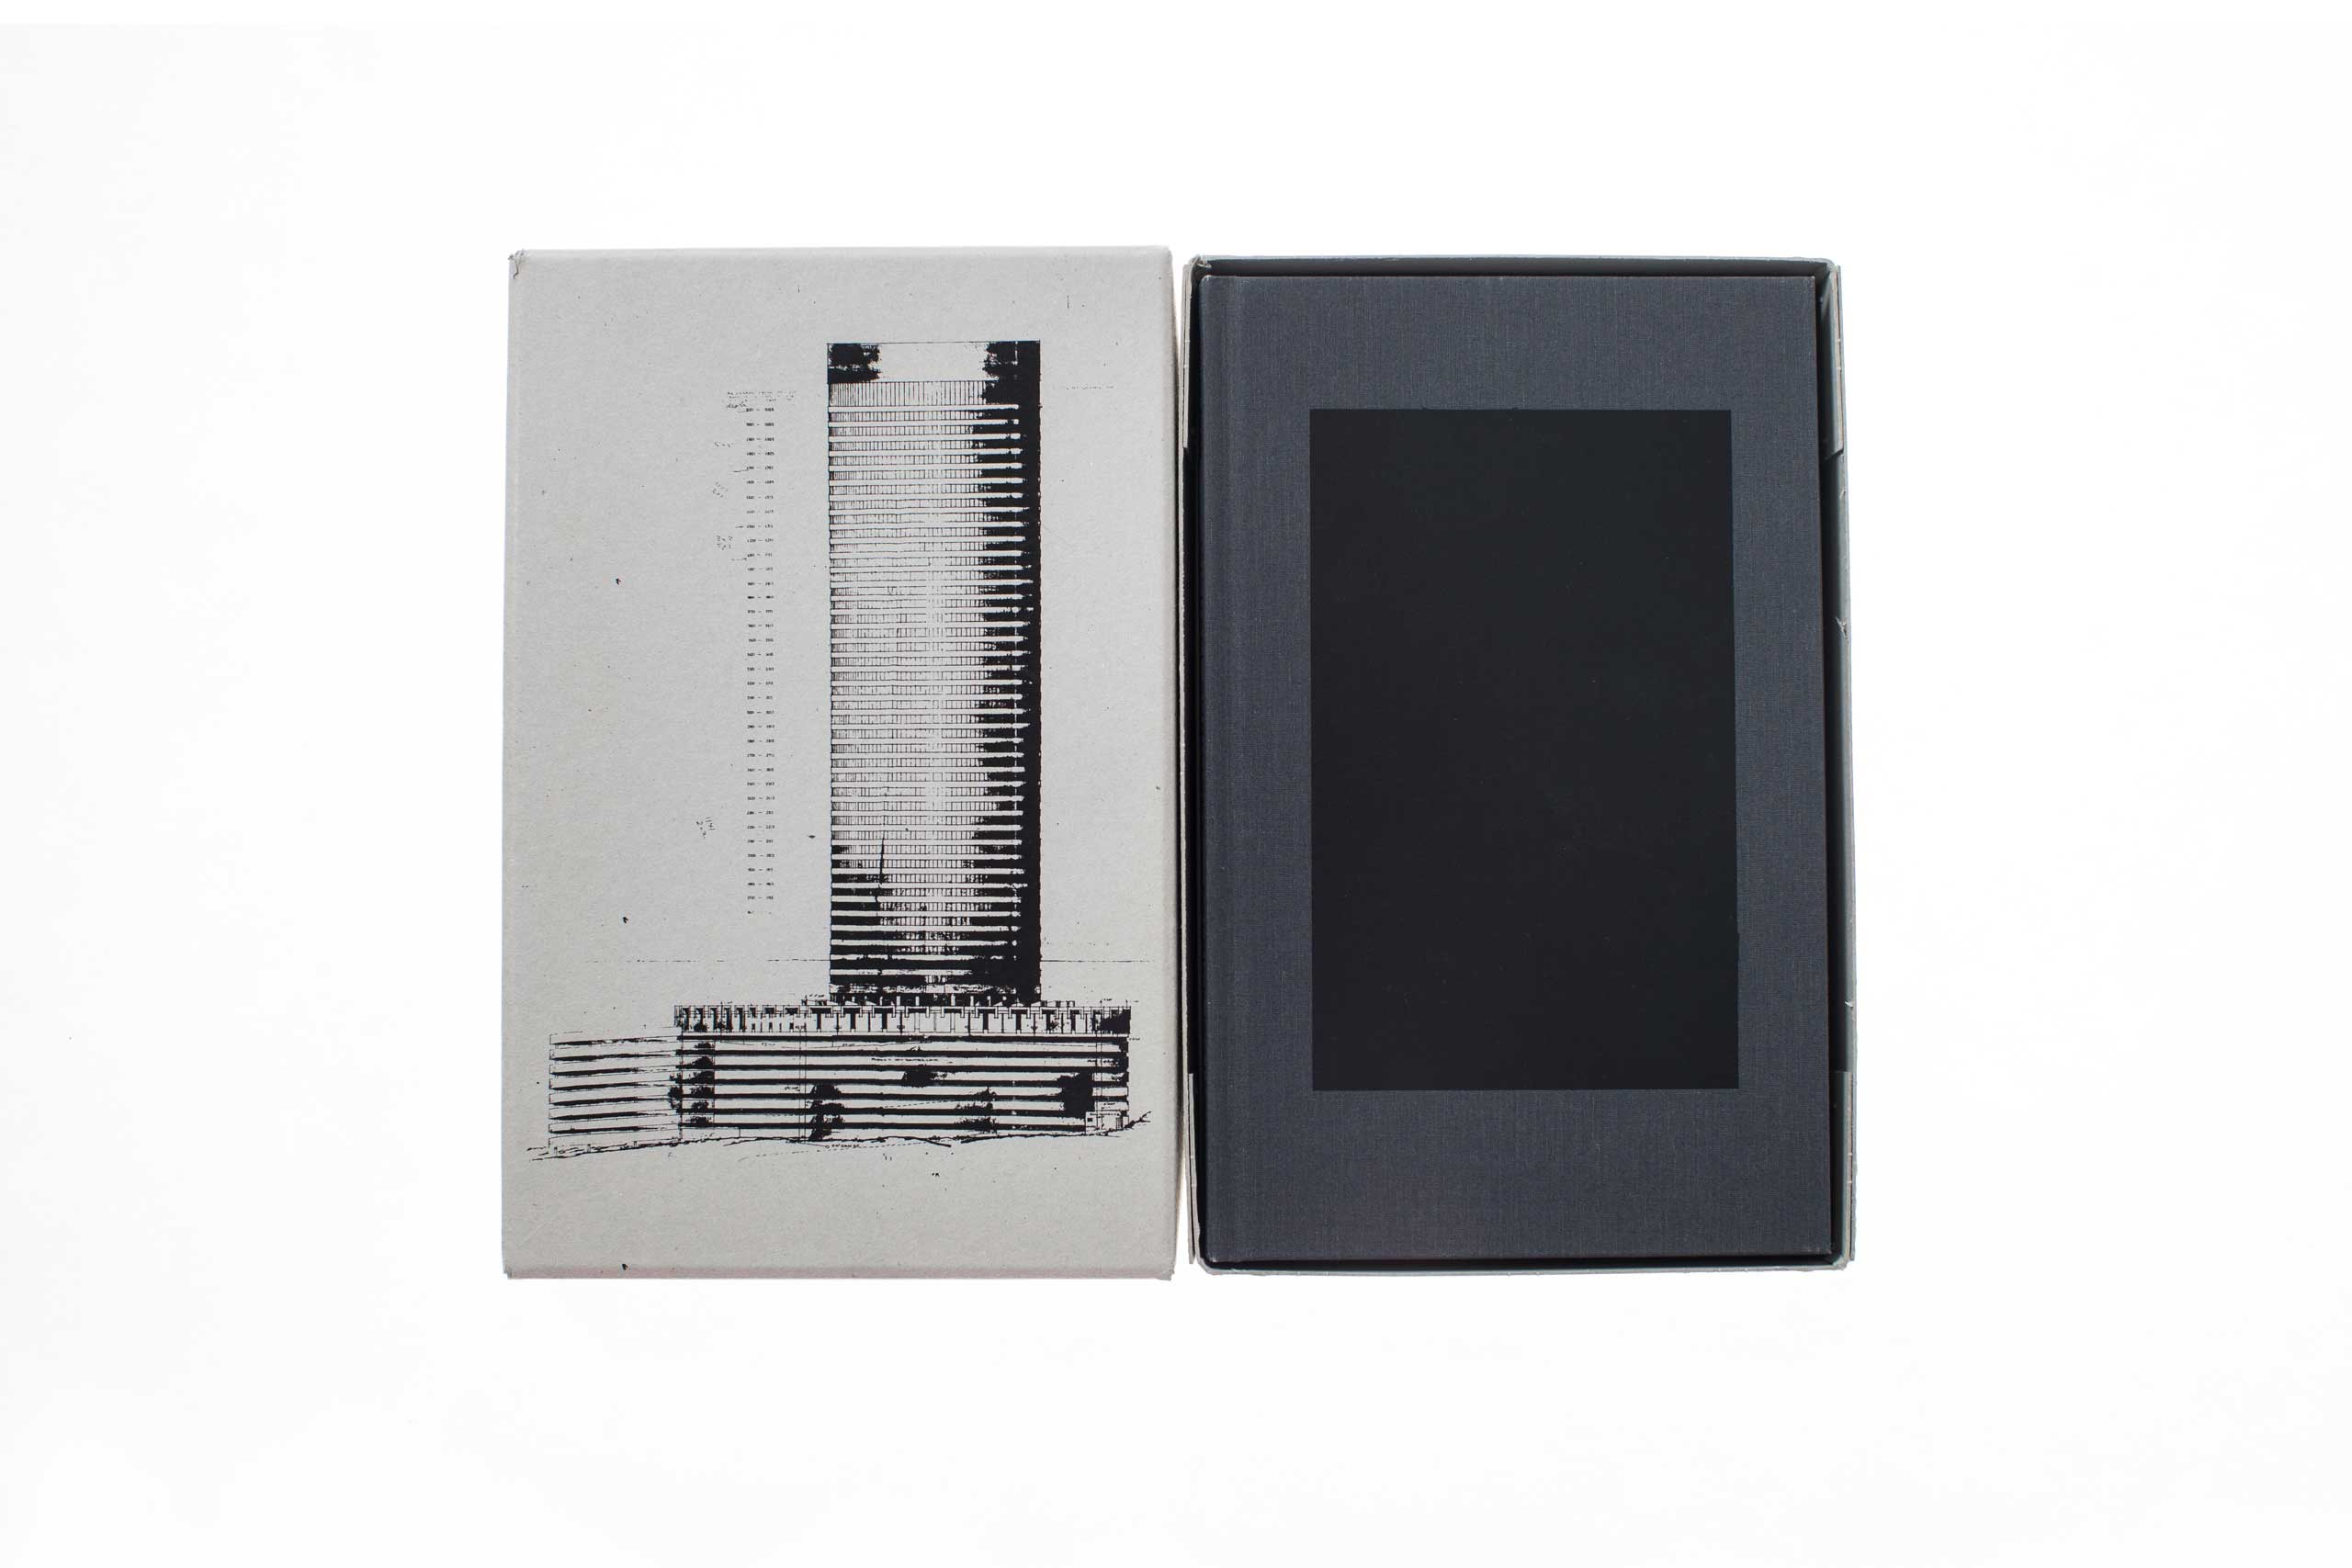 Ponte City by Mikhael Subotsky & Patrick Waterhouse's published by Steidl                                                              A collection of images of Ponte City, an enormous apartment complex in Johannesburg, South Africa. An exhaustive visual, historical and analytical examination of every resident, every doorway, and conceivable angle of the largest residential building in Africa.